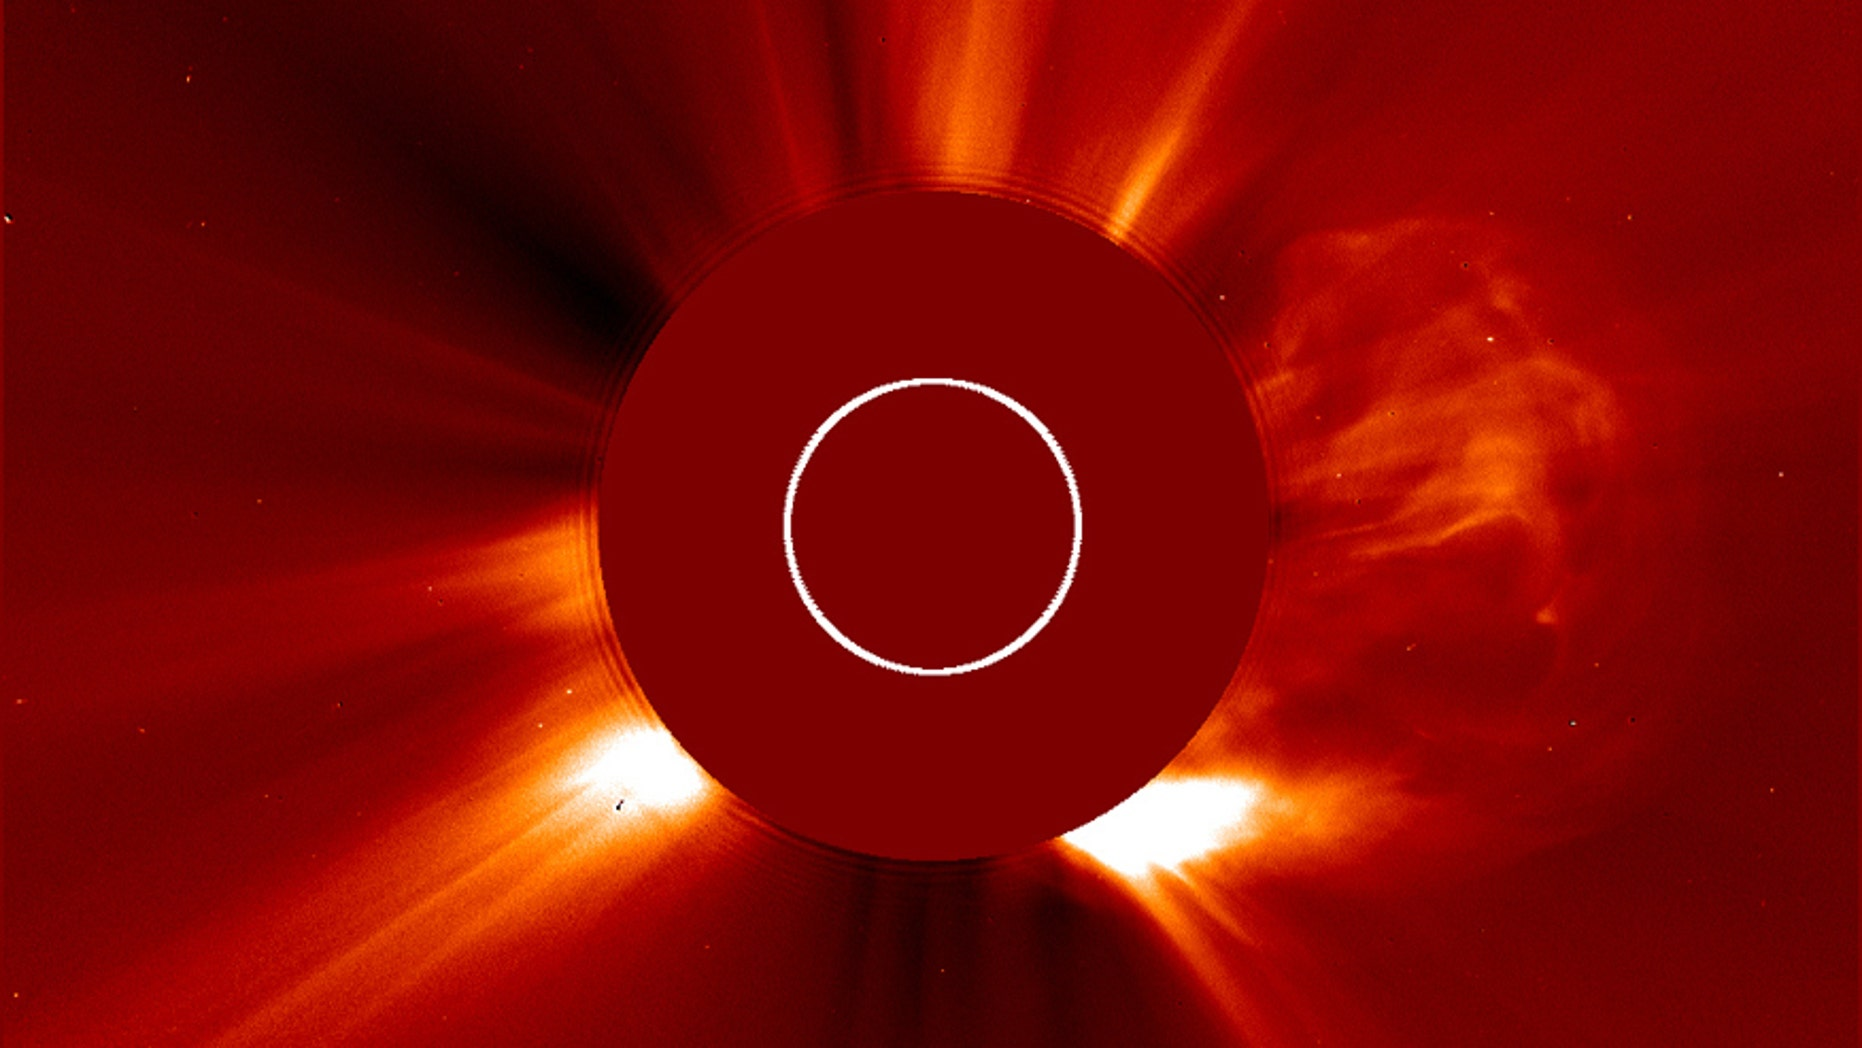 On the right side, a cloud of solar material ejects from the sun in one of the fastest coronal mass ejections (CMEs) ever measured.